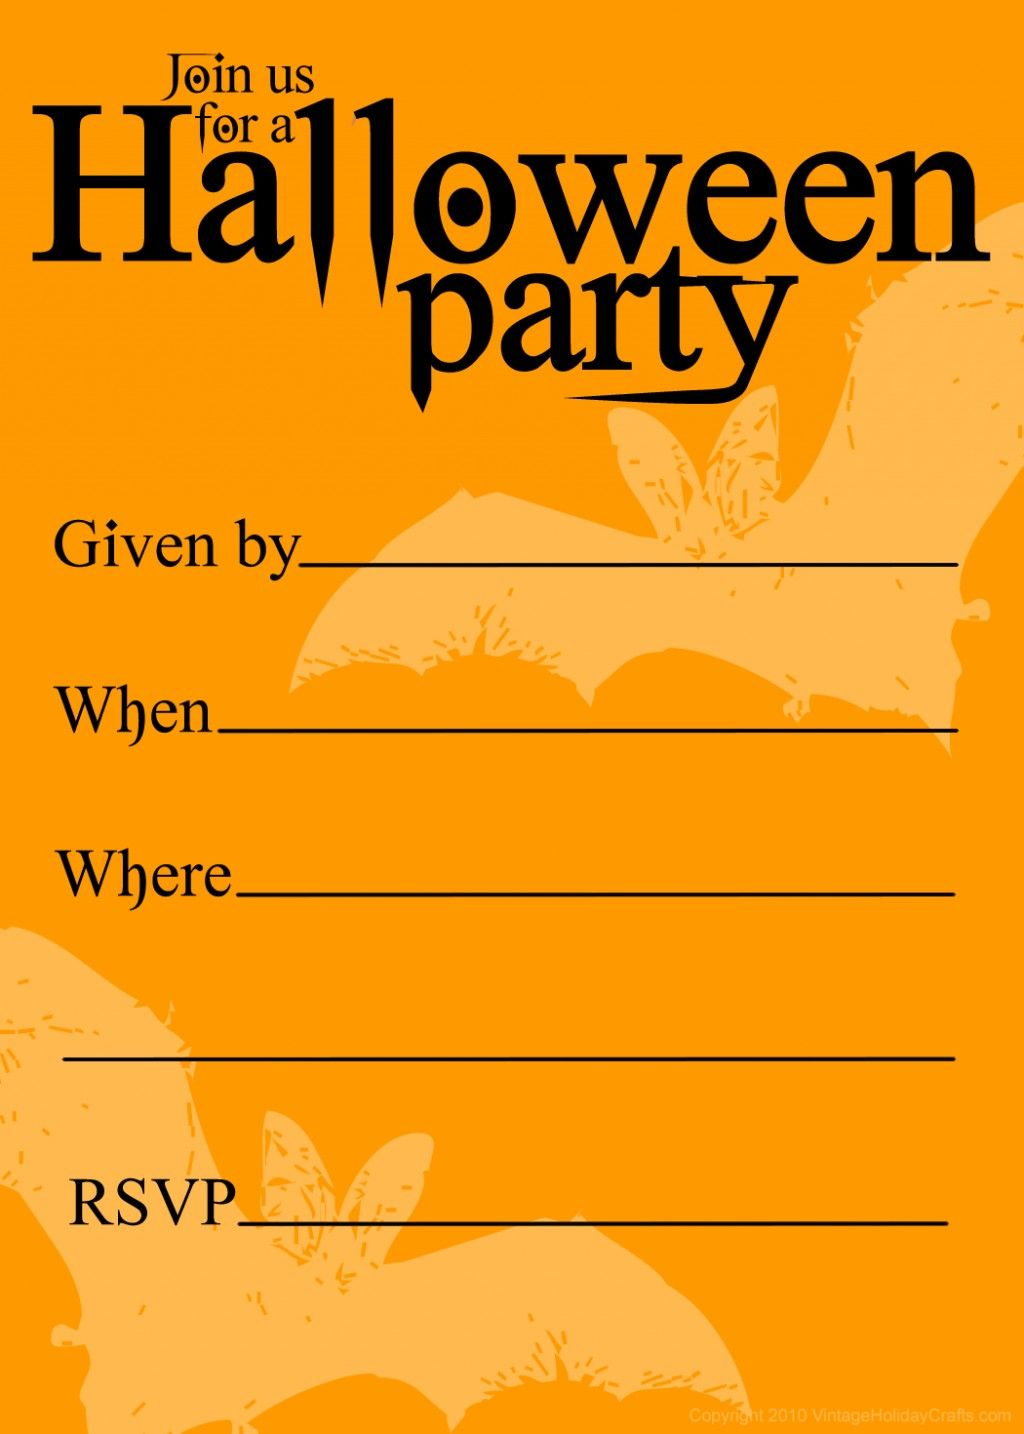 Free Printable Halloween Birthday Invitations Templates | Halloween - Halloween Party Invitation Templates Free Printable